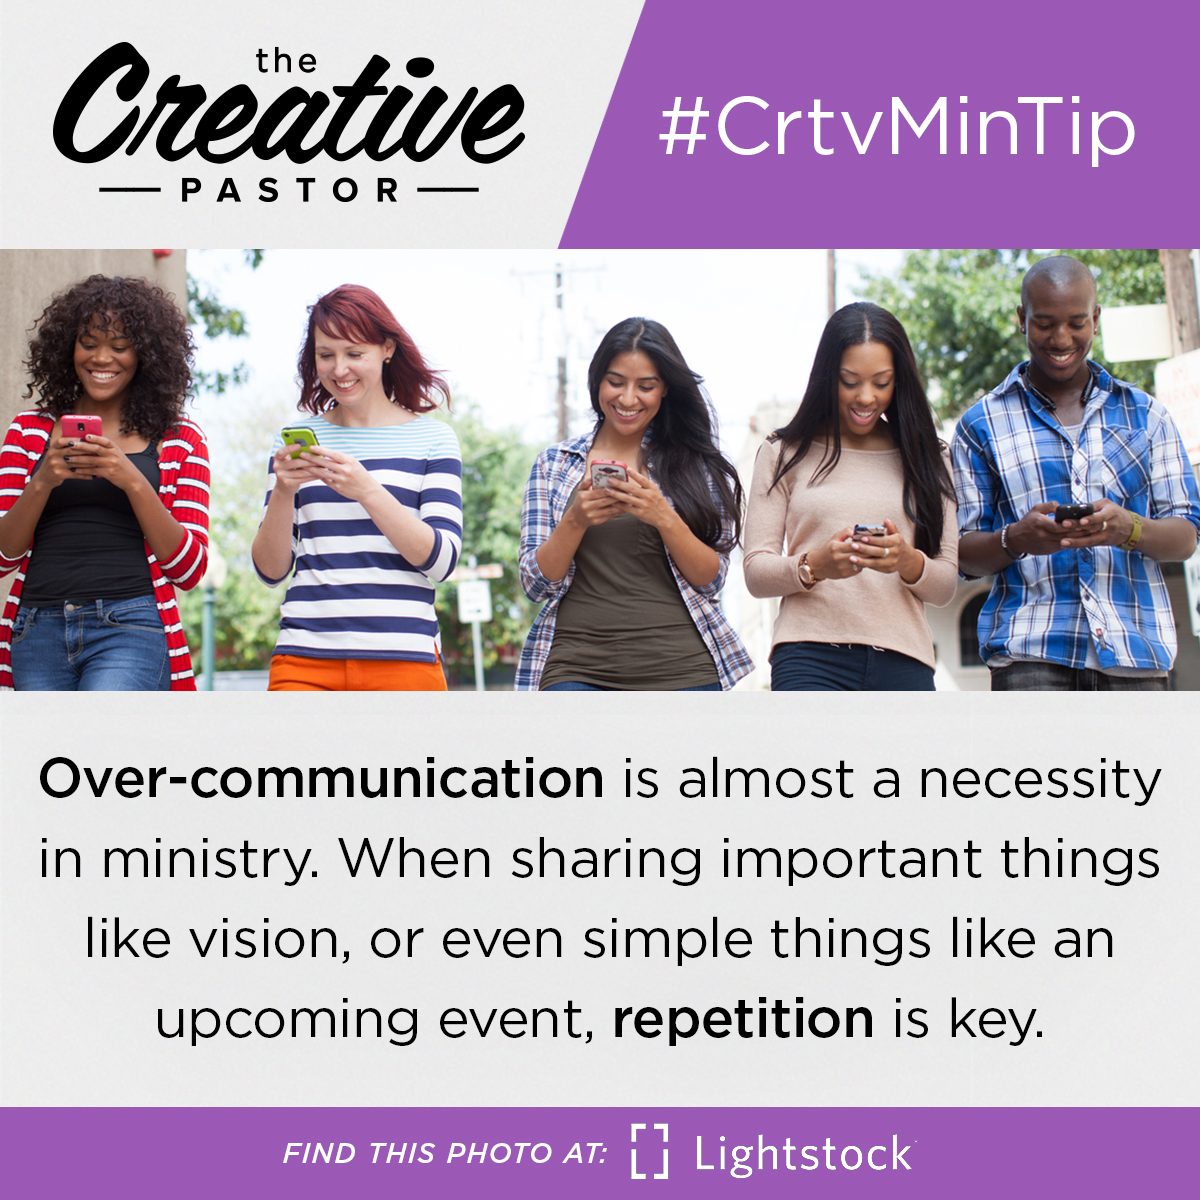 Over-communication is almost a necessity in ministry. When sharing important things like vision, or even simple things like an upcoming event, repetition is key.